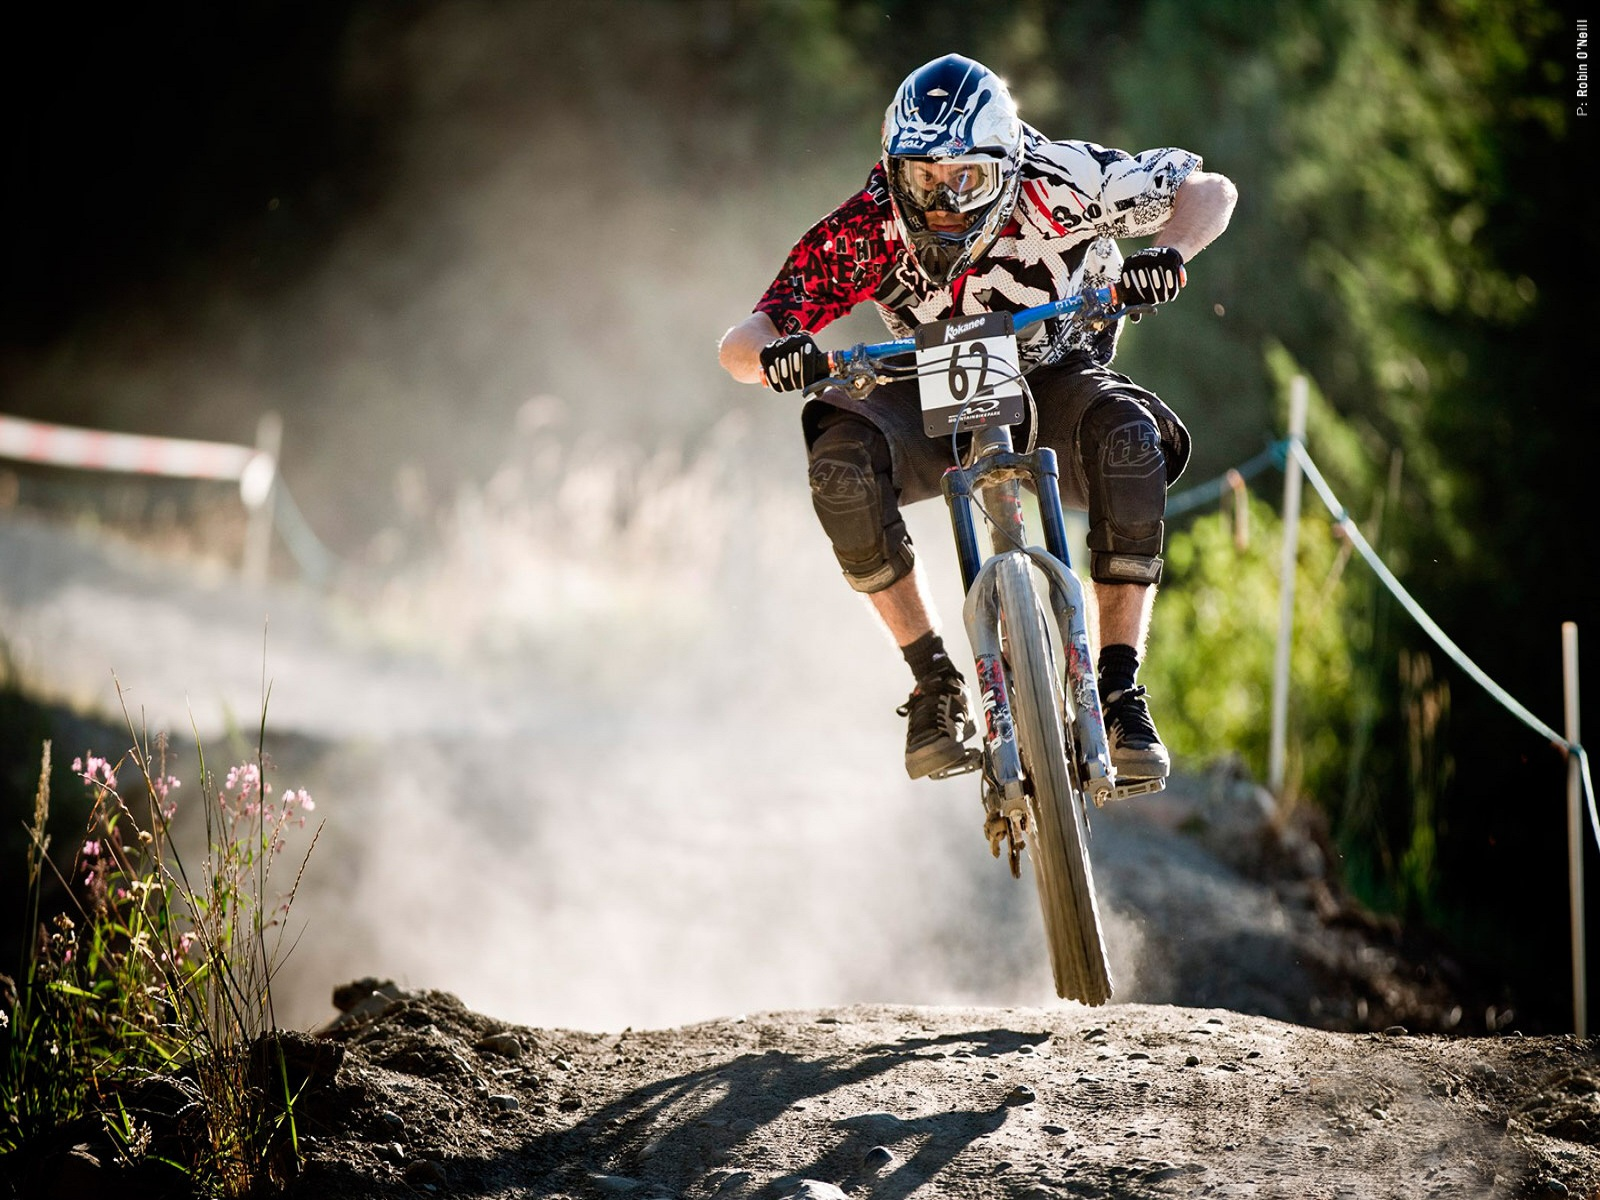 HD Sport Wallpapers: Extreme Sports